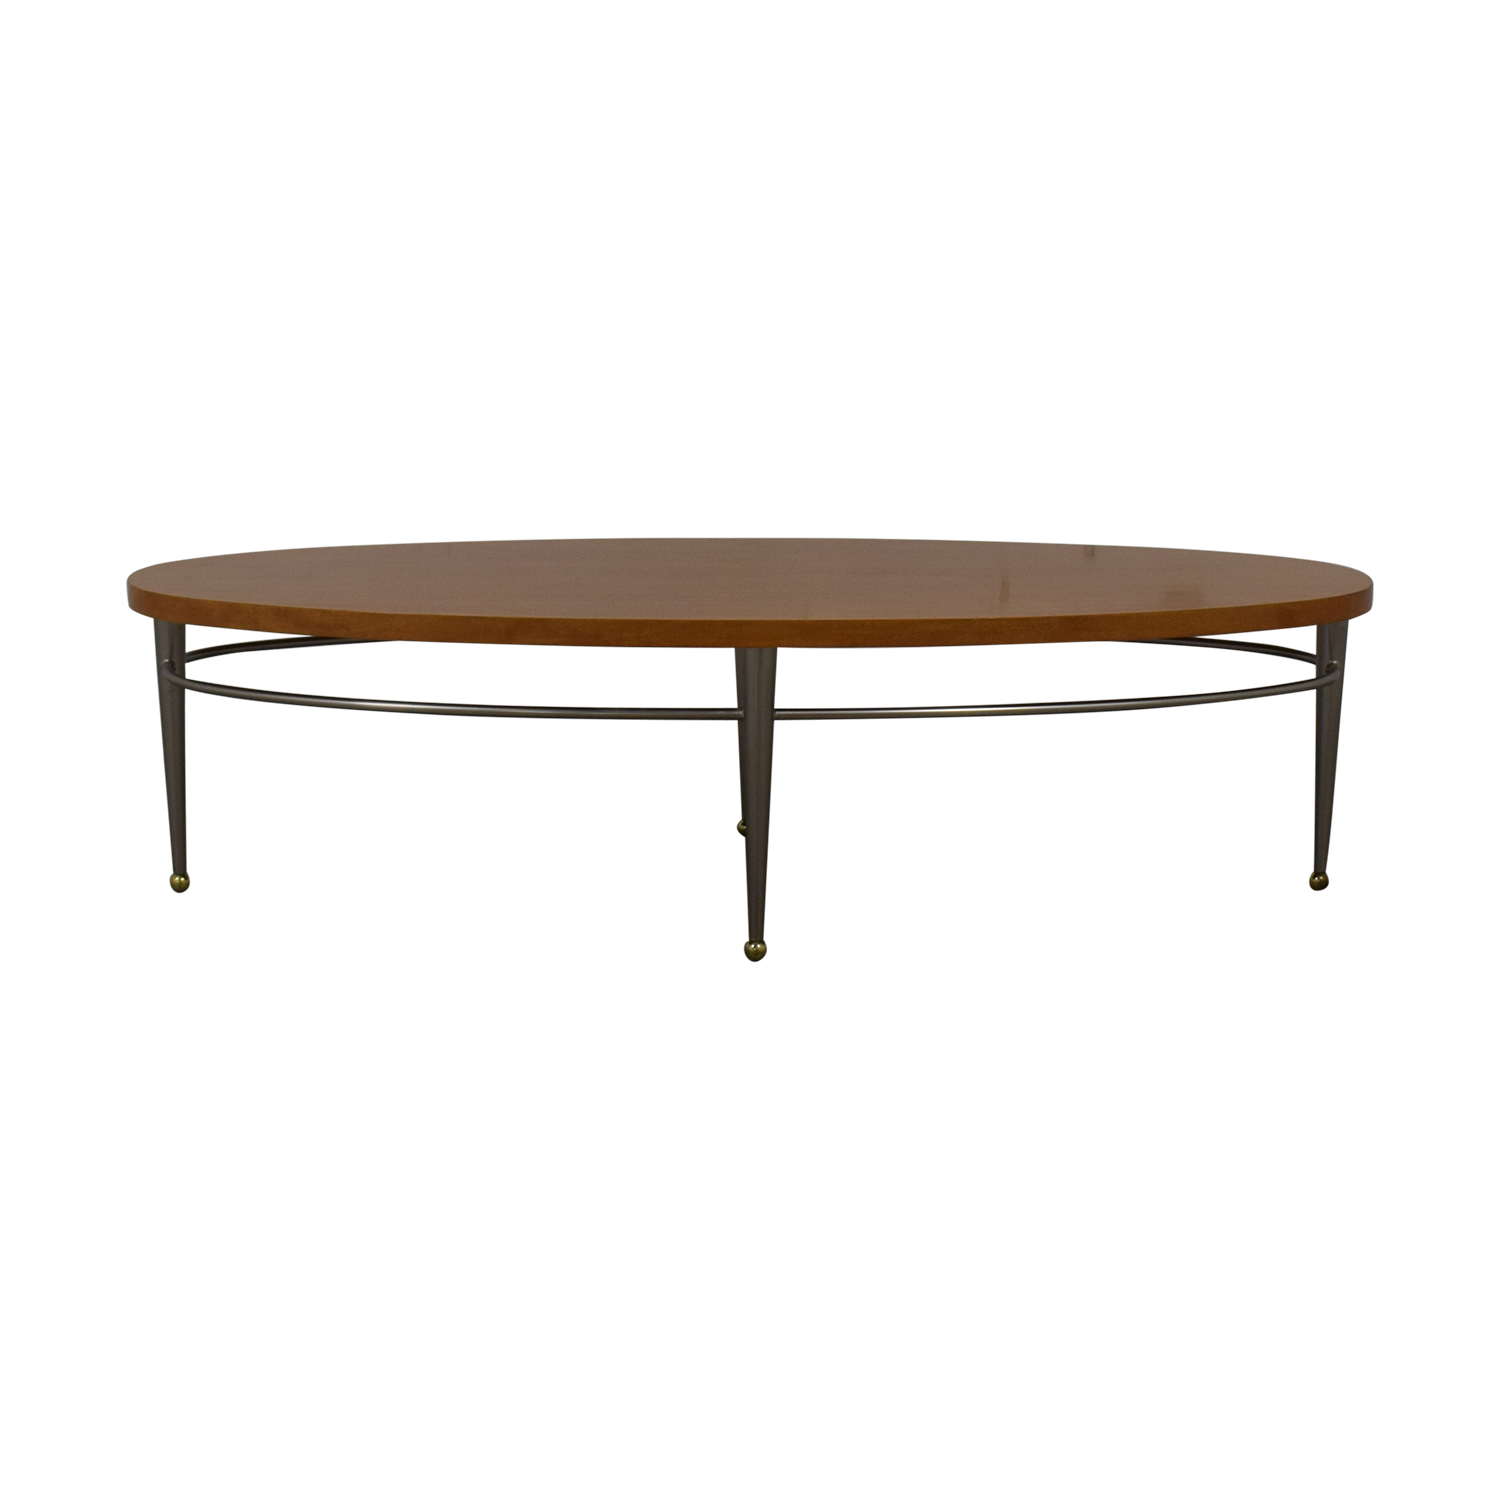 Ethan Allen Ethan Allen Round Wood Coffee Table dimensions